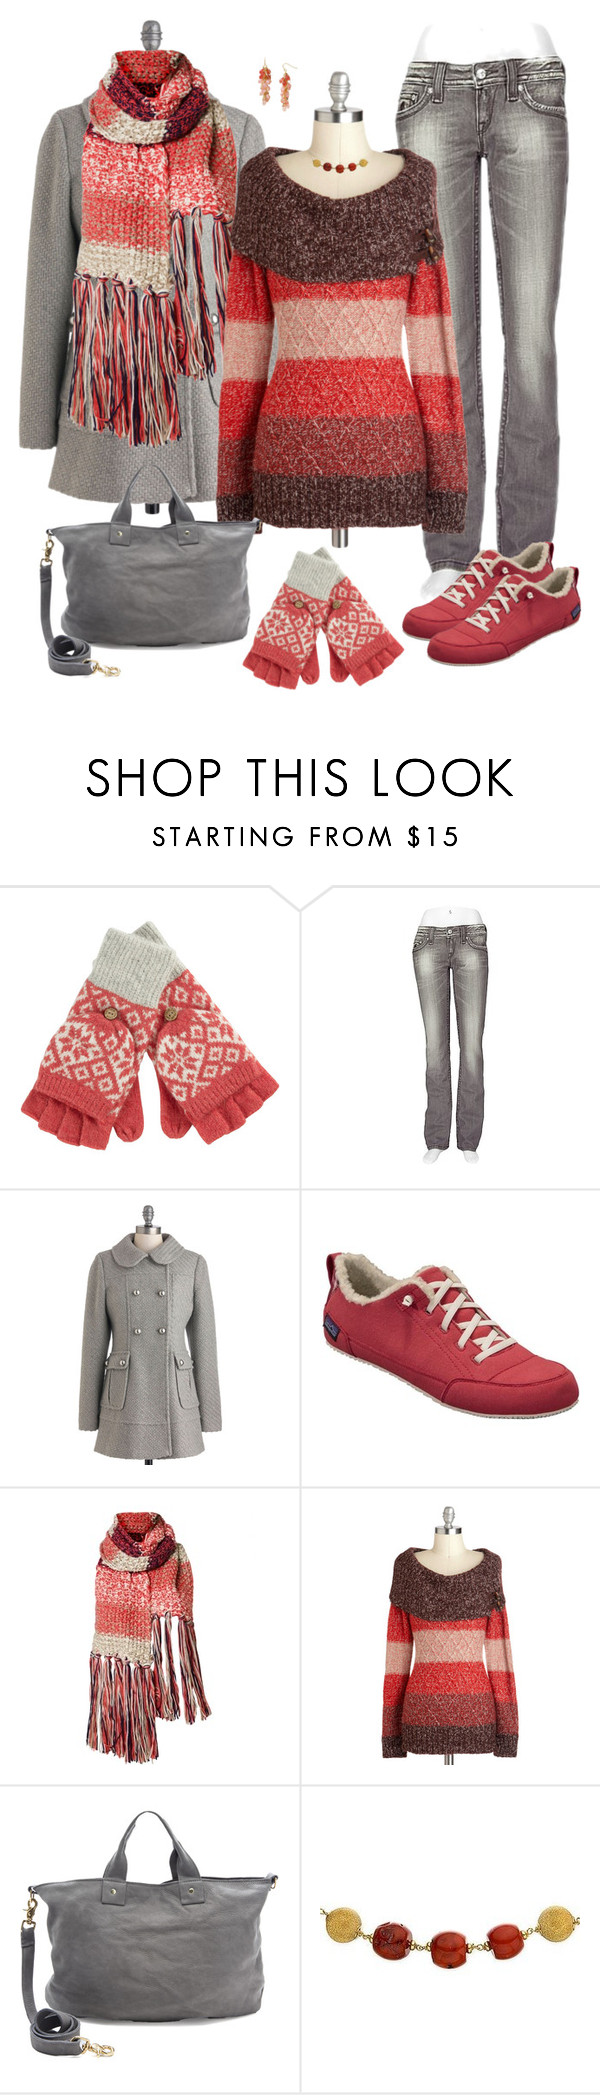 """""""It Makes Me Feel Warm and Fuzzy"""" by exaybachay ❤ liked on Polyvore featuring Fat Face, Rock Revival, Patagonia, Clare V., Ice, R.J. Graziano, ombre, scarf, snowflake and mittens"""